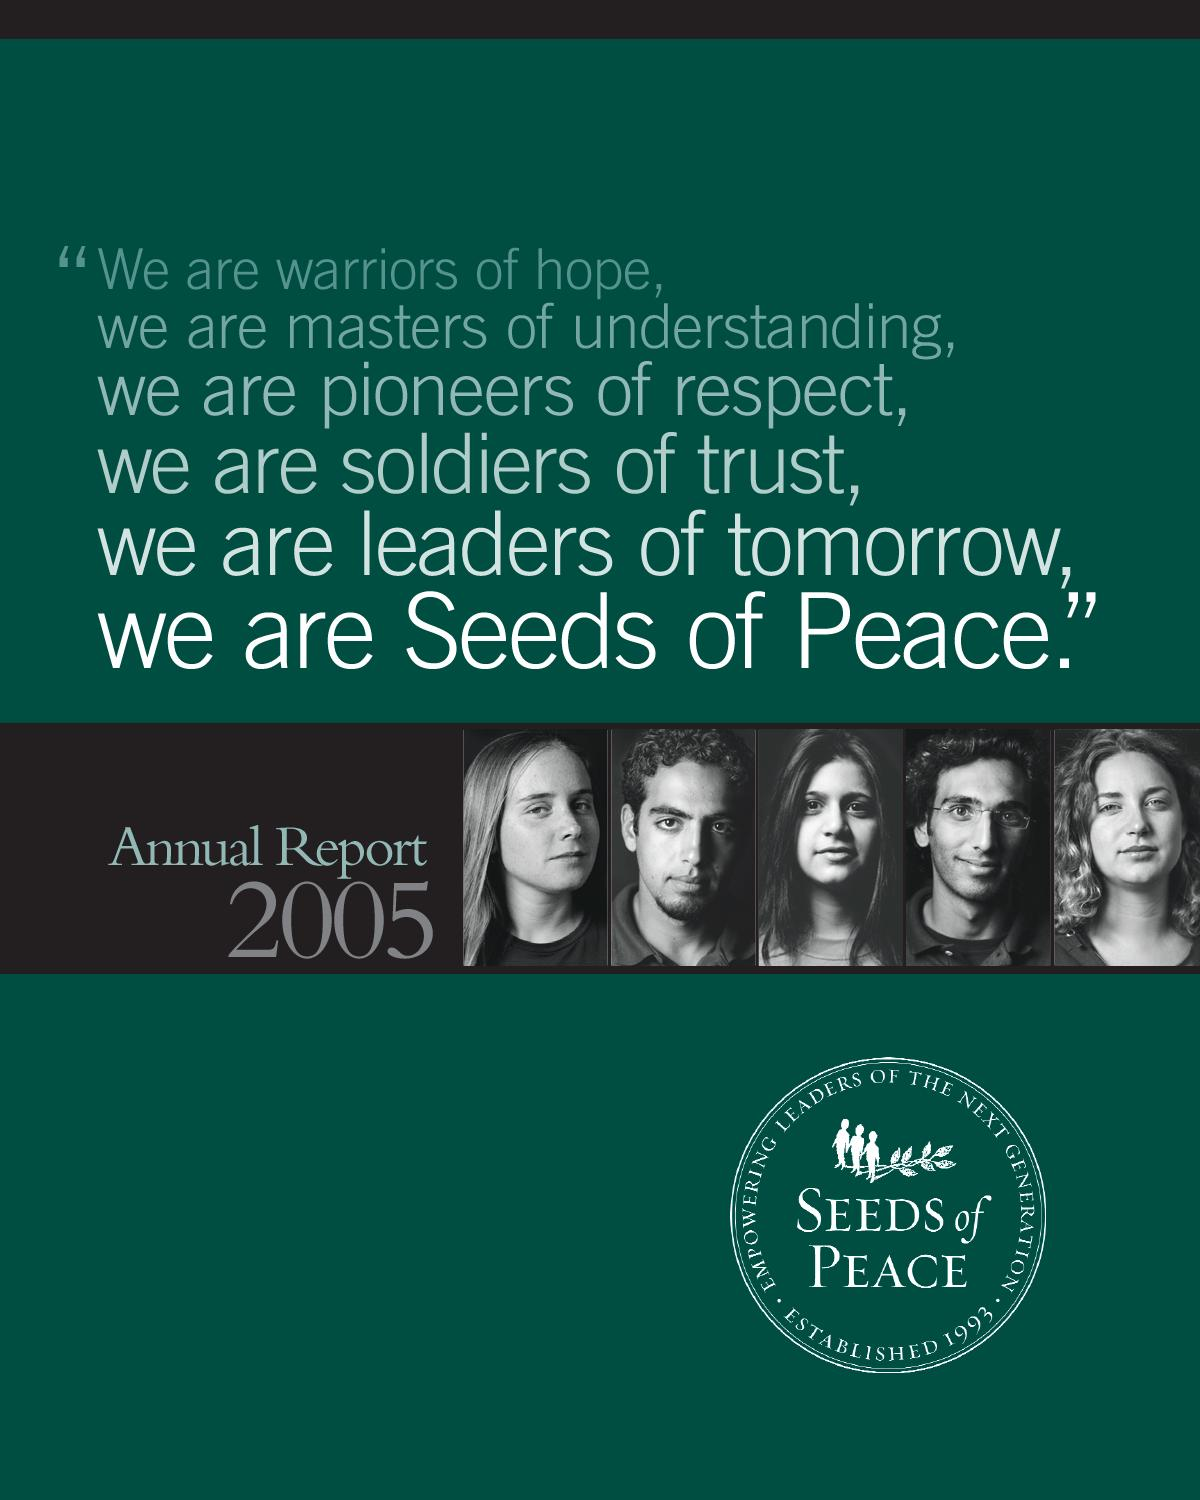 AnnualReport05-06 by Seeds of Peace - issuu